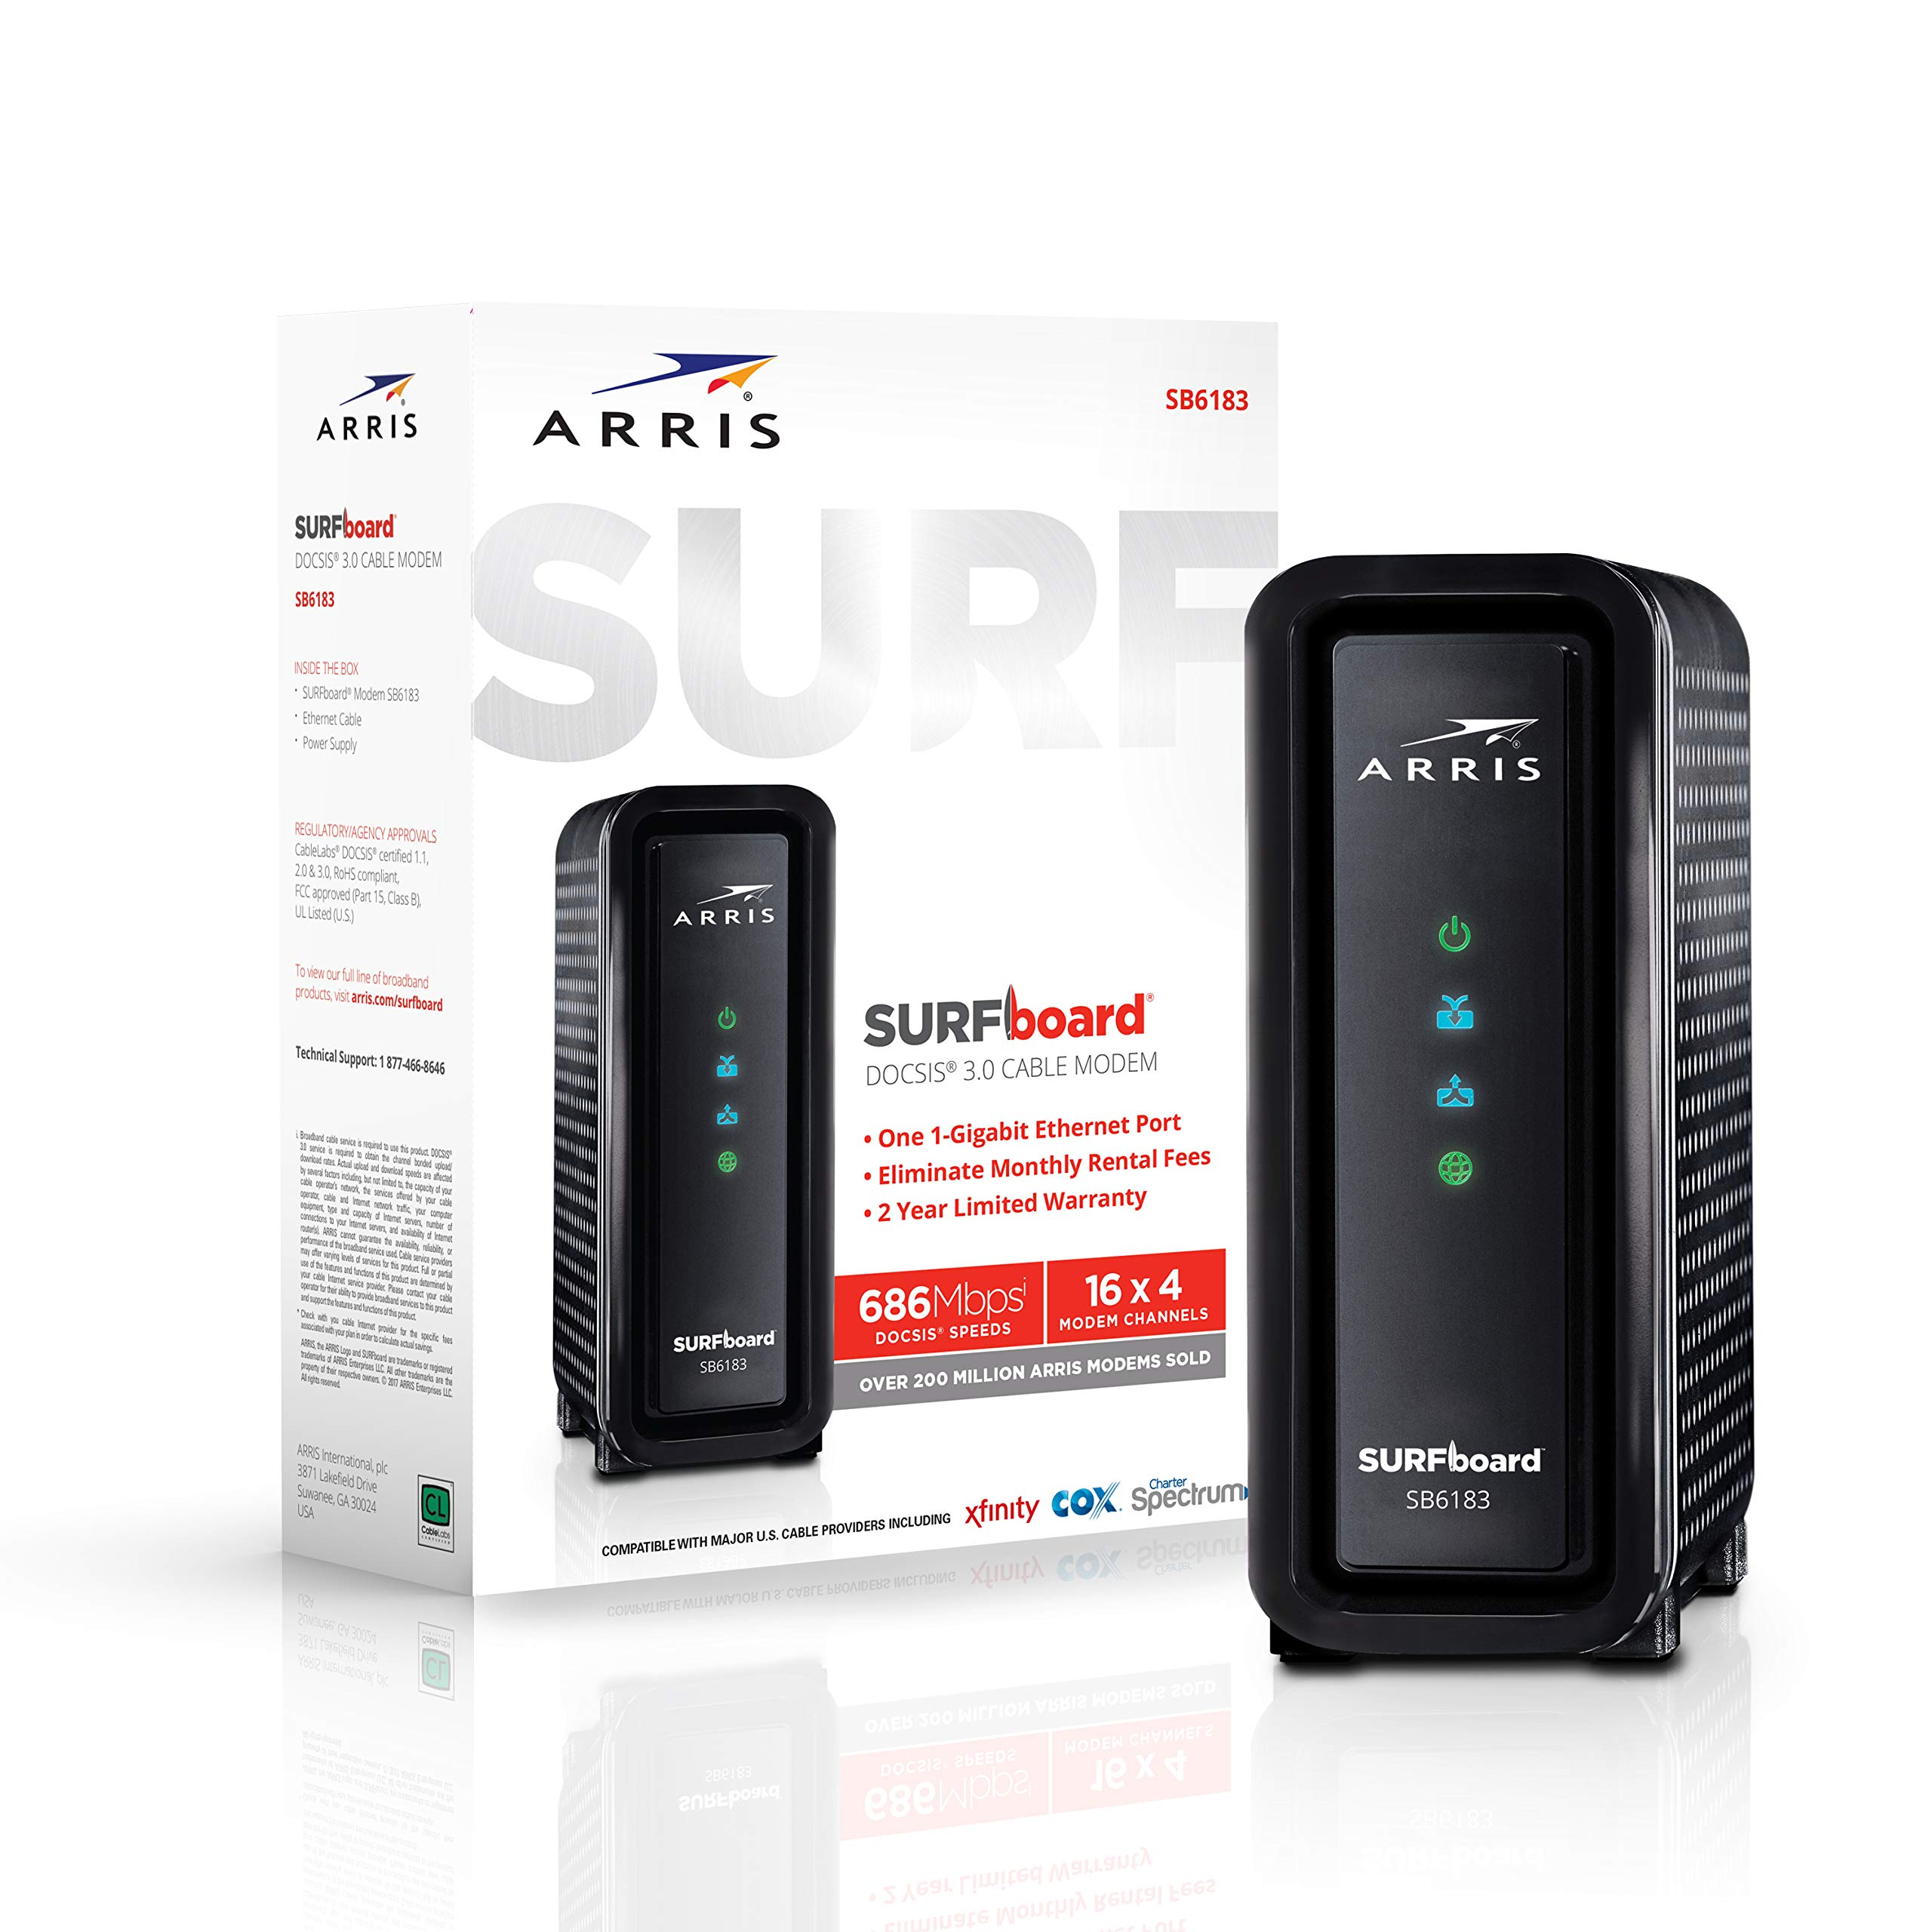 ARRIS SURFboard 16x4 SB6183 DOCSIS 3.0 Cable Modem- Retail Package- Black